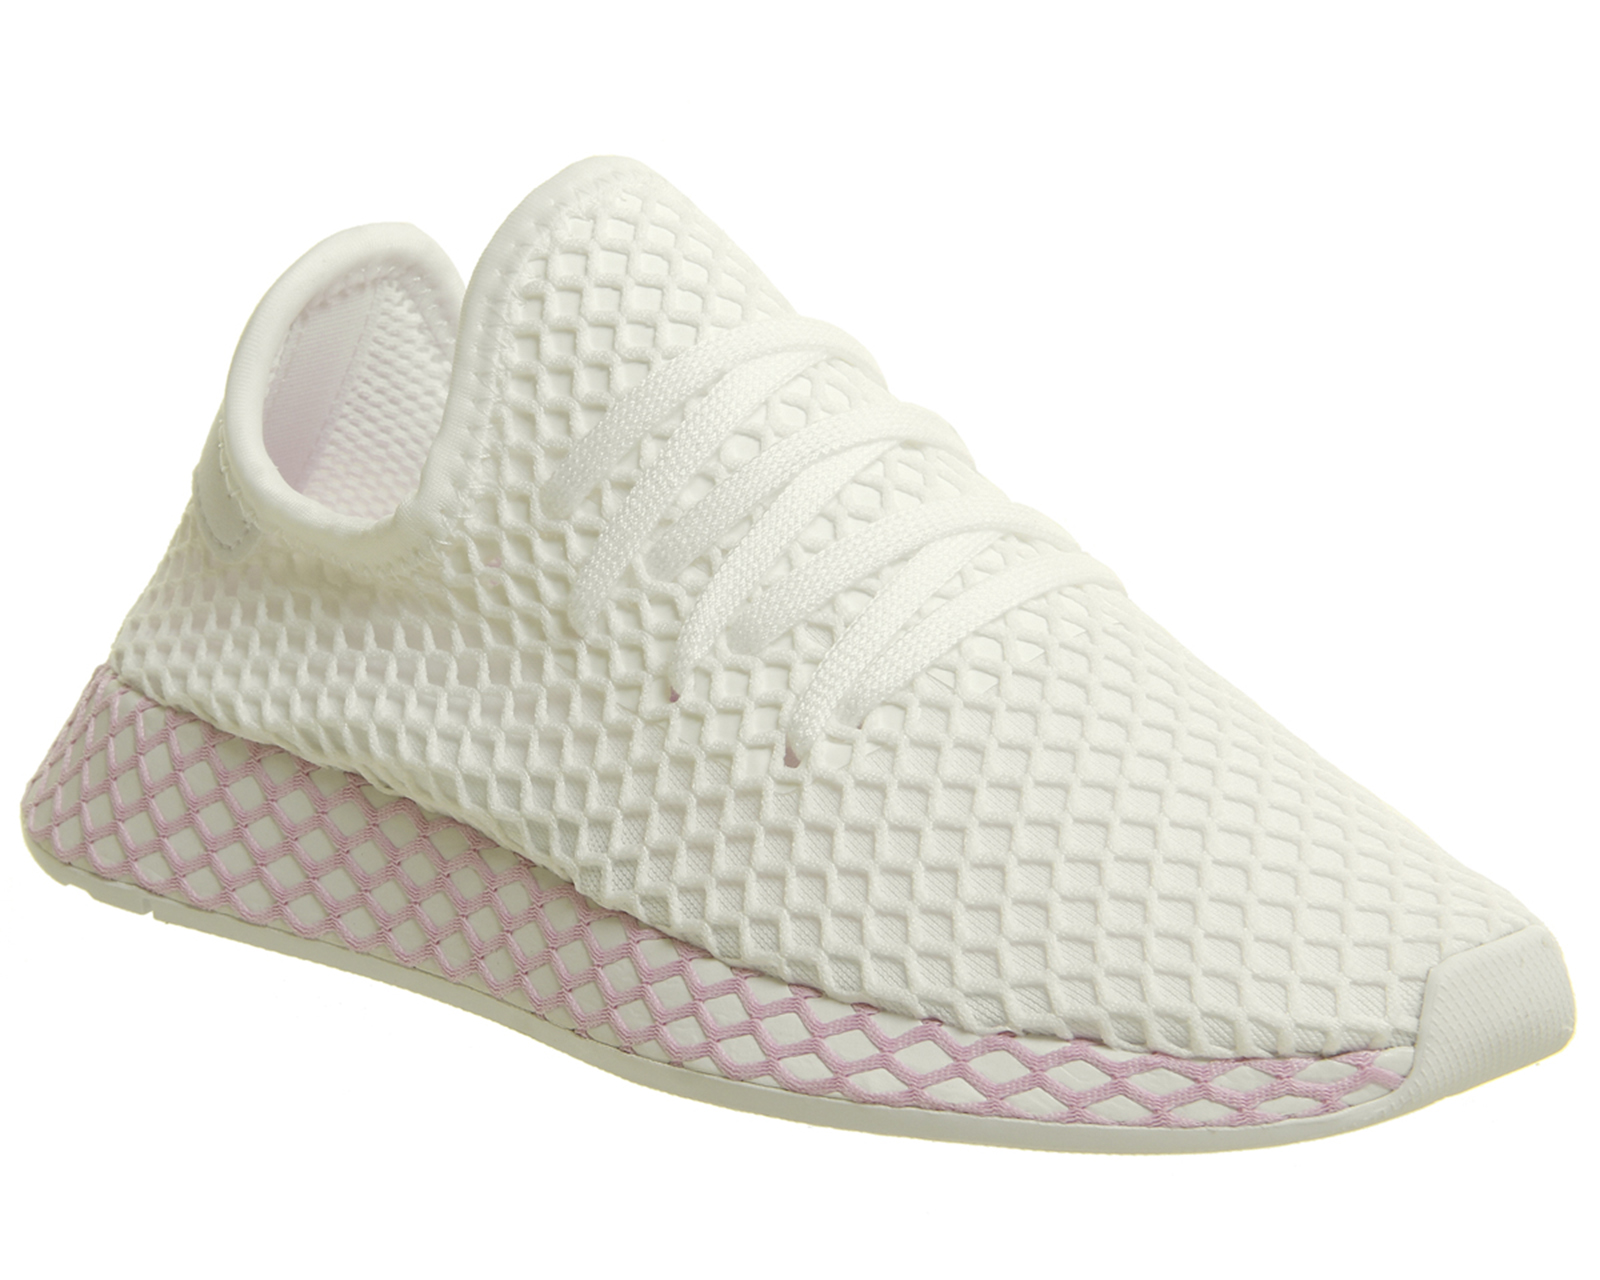 new product cfce6 9afec Sentinel Womens Adidas Deerupt Trainers WHITE CLEAR LILAC F Trainers Shoes